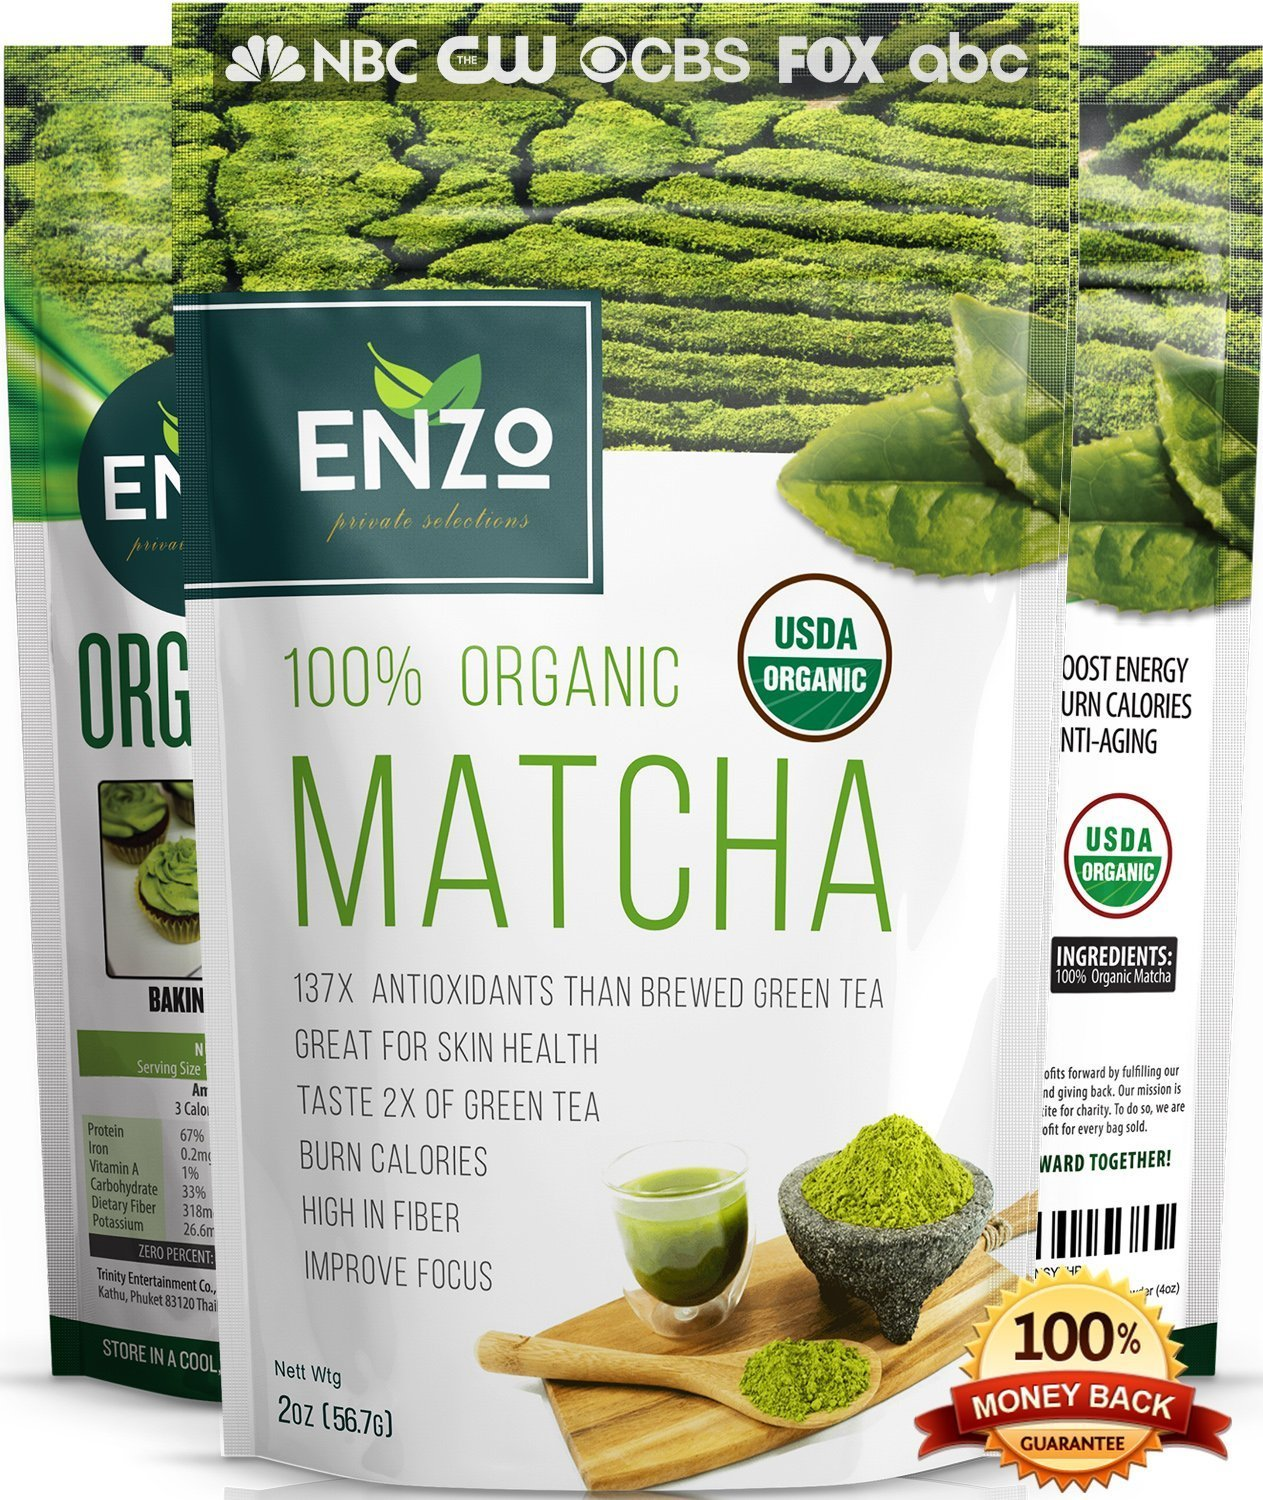 Matcha Green Tea Powder 2oz - Strong Milky Taste USDA Organic Certified - 137x Antioxidants Over Brewed Green Tea - Great for Latte, Smoothie, Ice Cream, Baking & Alternative Coffee Substitute